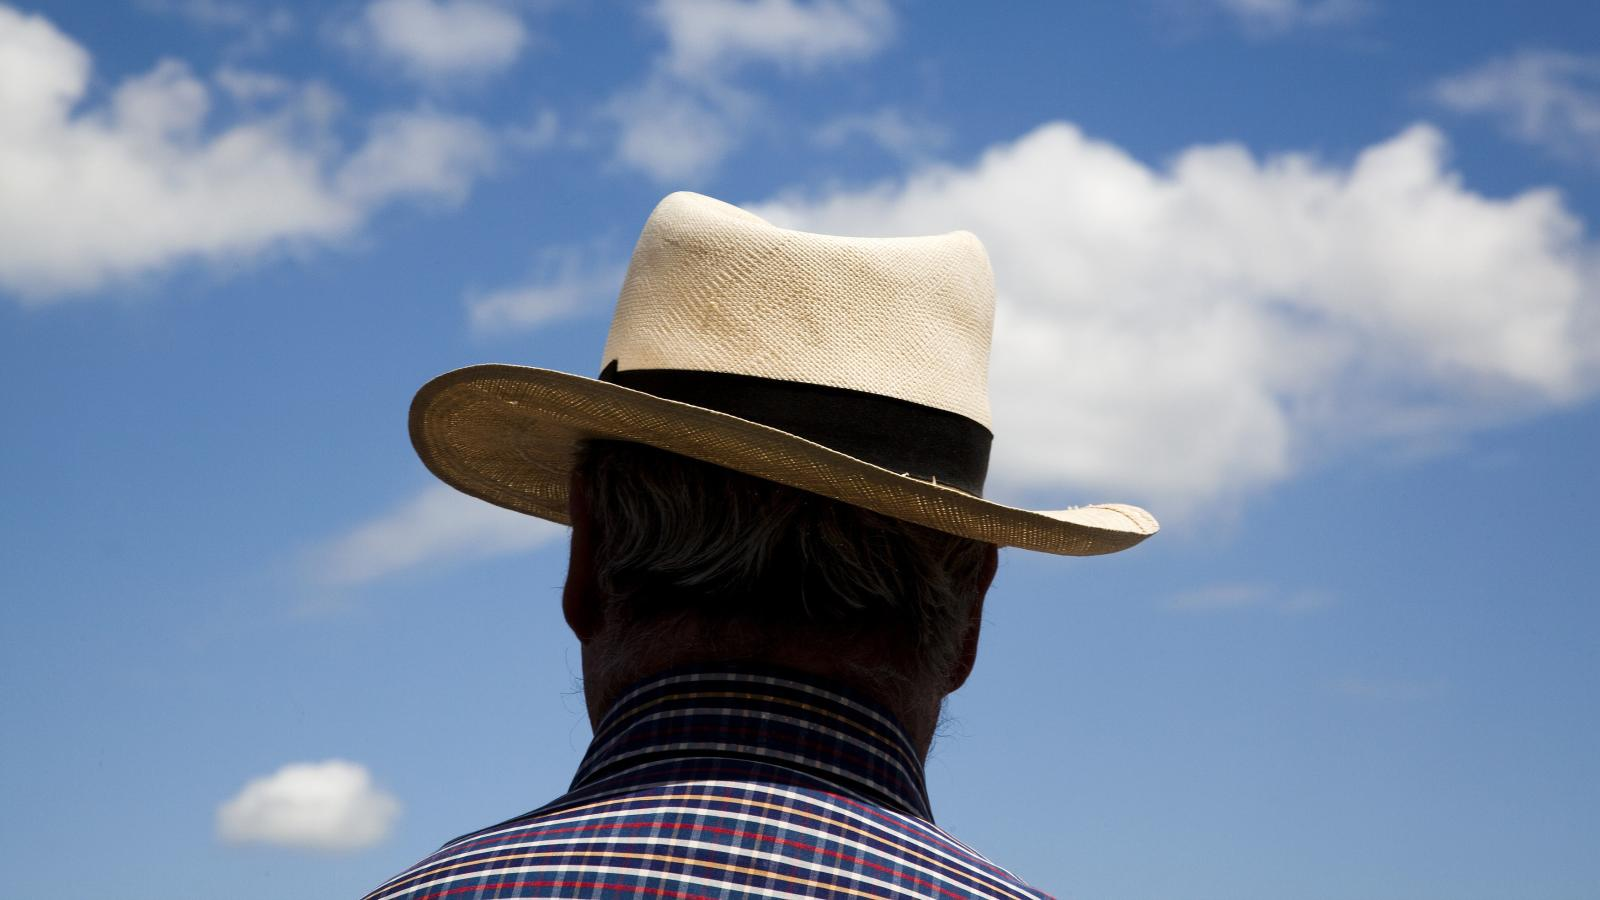 0aed98b9b The finest Panama hat in history, woven in a tiny Ecuadorean village ...